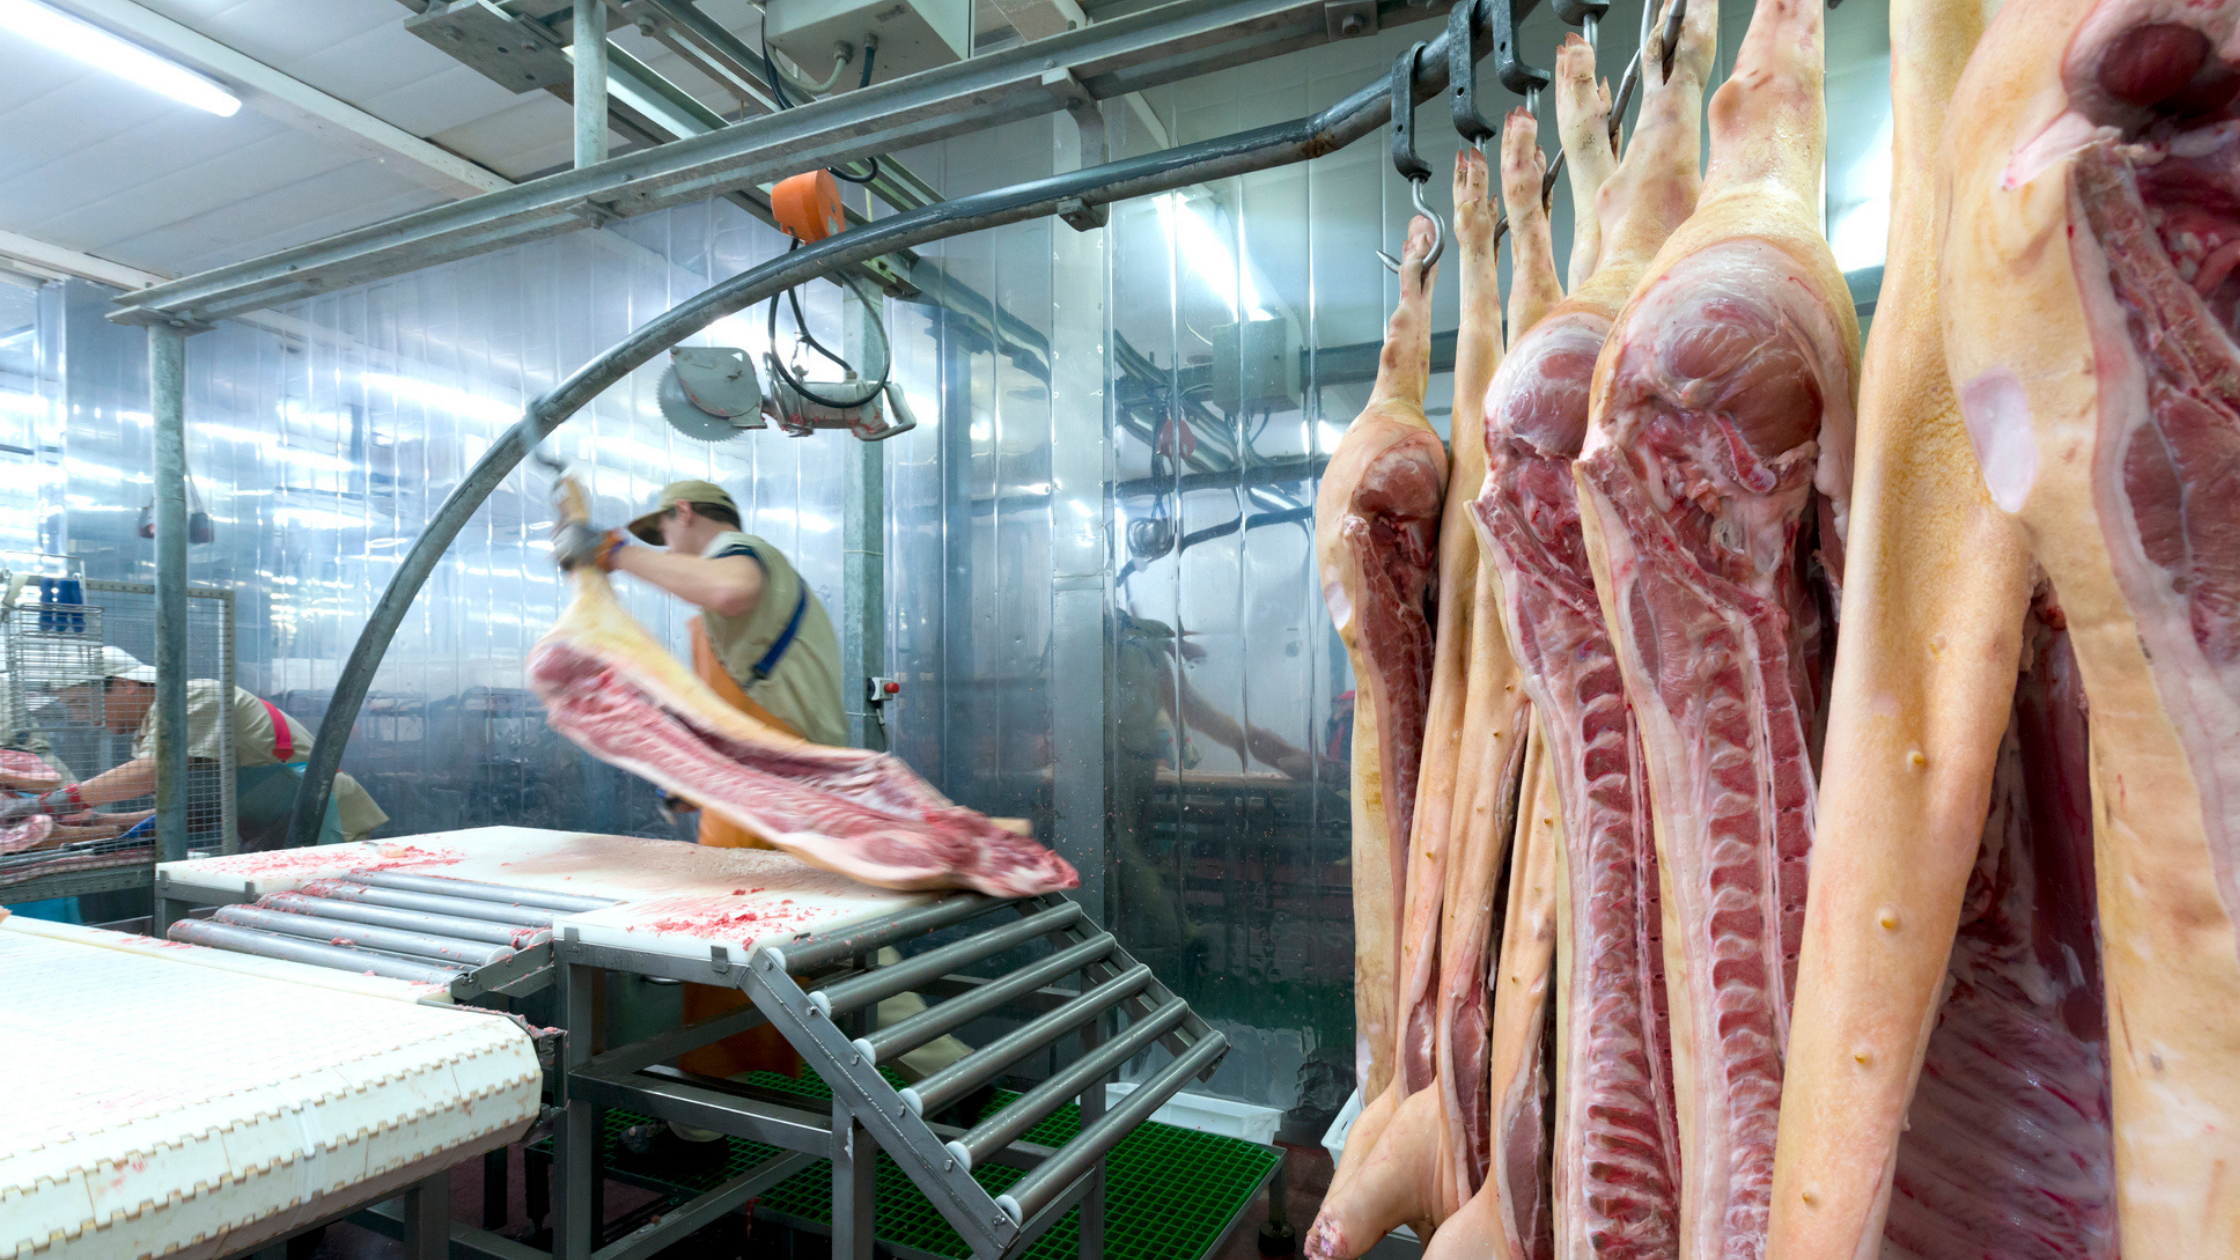 Meatpacking worker in a processing plant